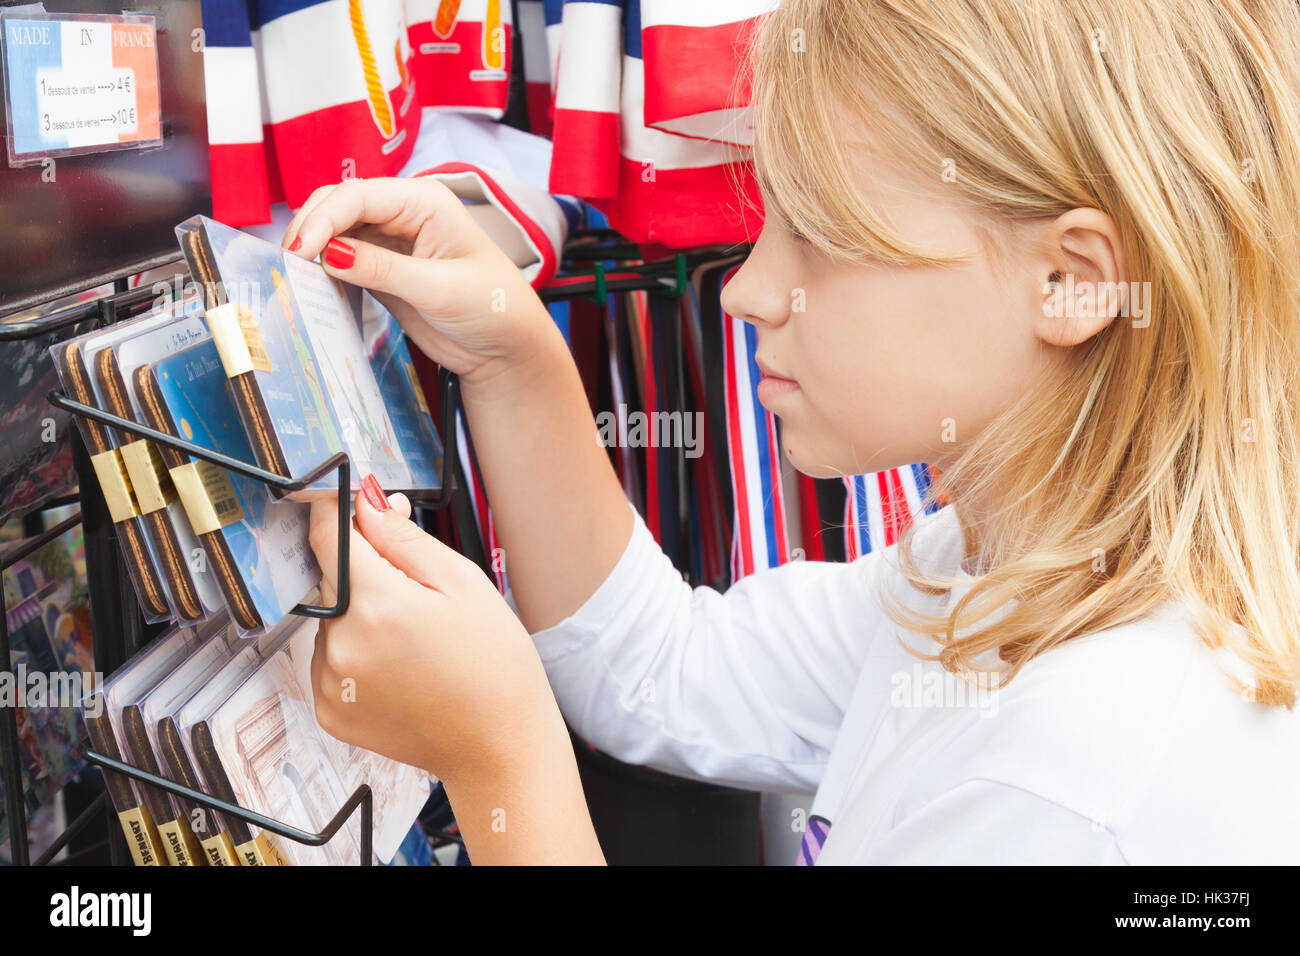 Paris, France - August 11, 2014: Blond Caucasian girl considers souvenirs in small street gift shop - Stock Image